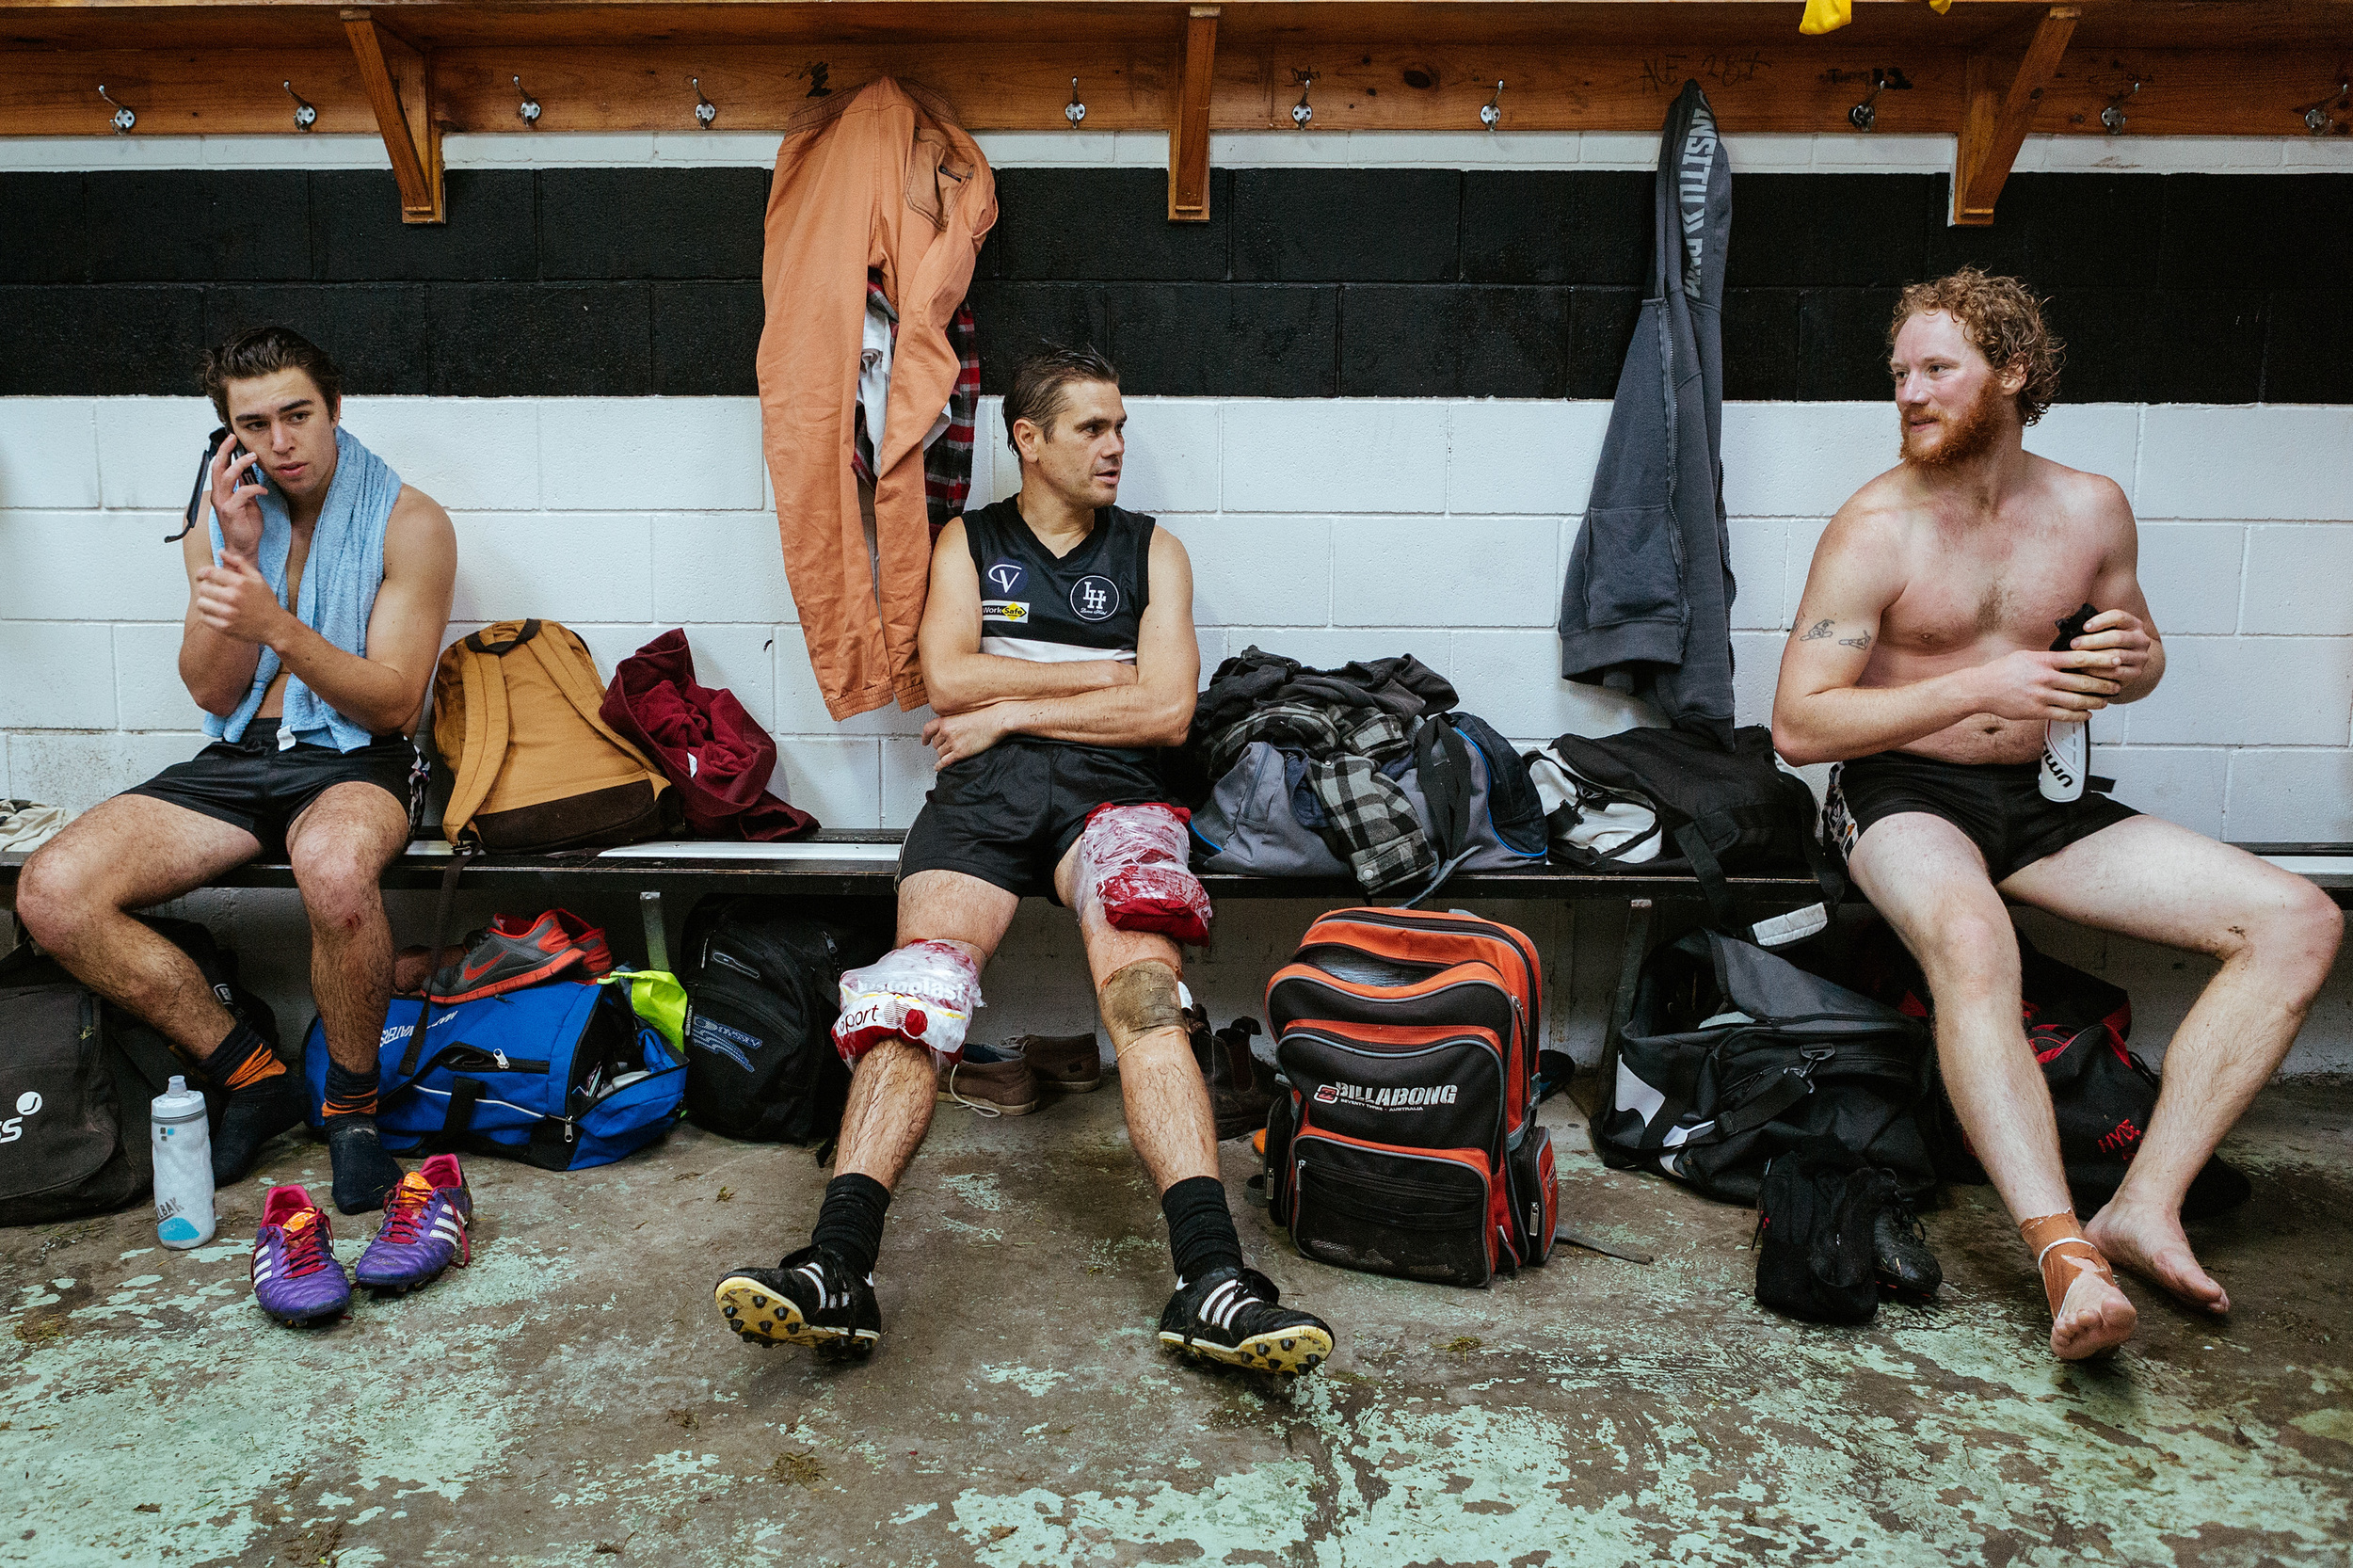 Players from the Lorne Football Club reserves side in the change room post match get their injuries patched up and discuss the match.